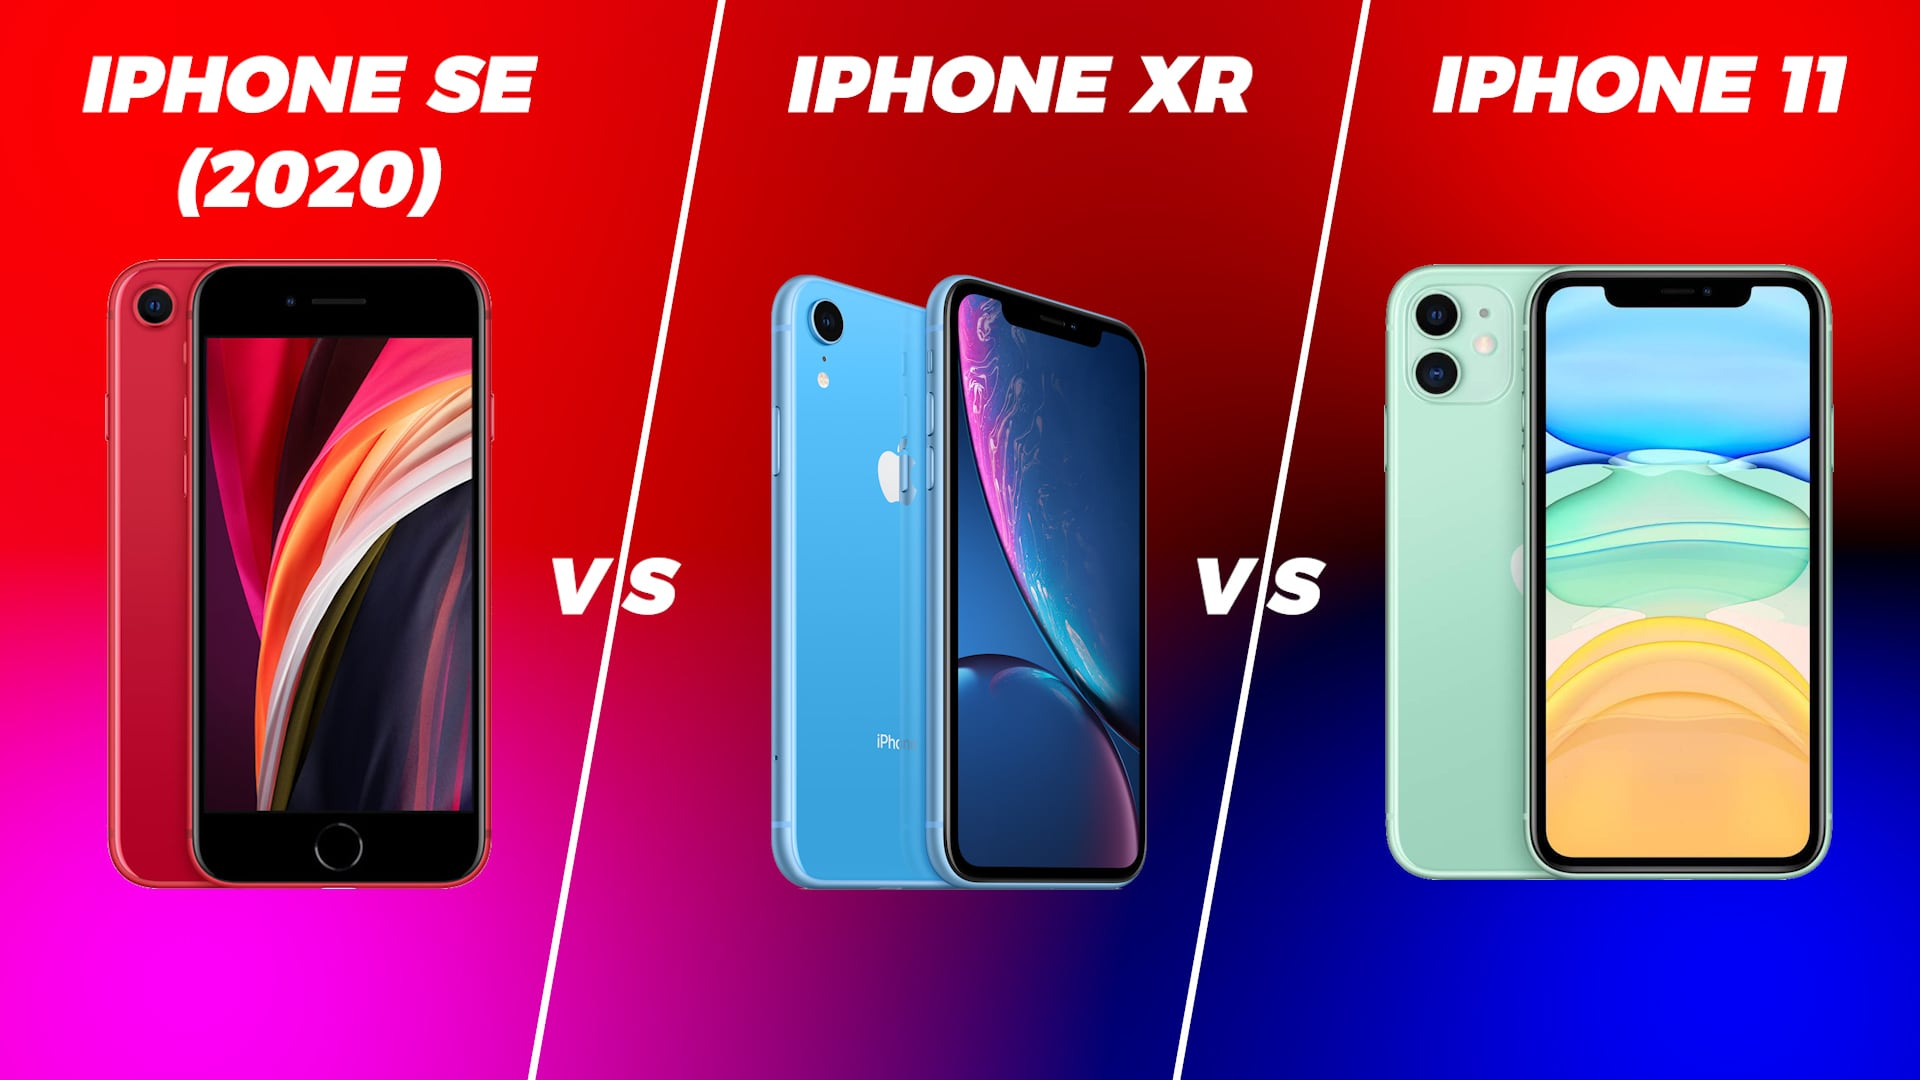 iPhone 11 vs iPhone SE (2020) vs iPhone XR: Which Is the Best 'Affordable' iPhone in India?